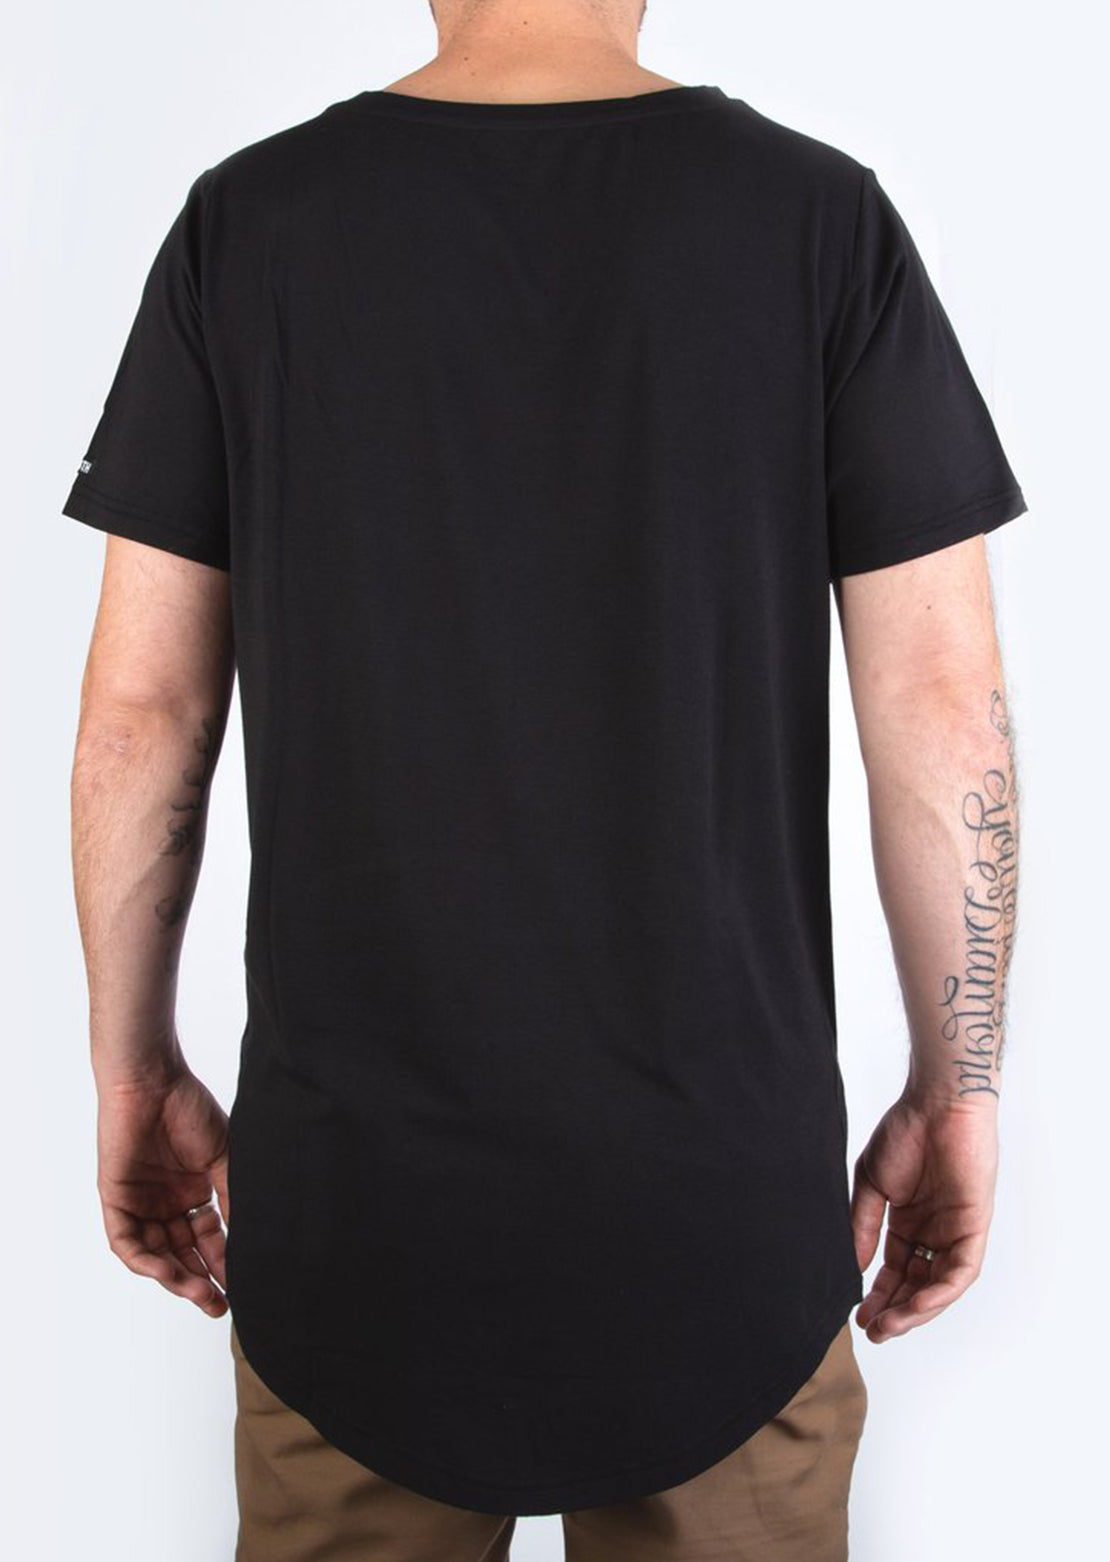 BN3TH Men's Short Sleeve Shirt - Model Back